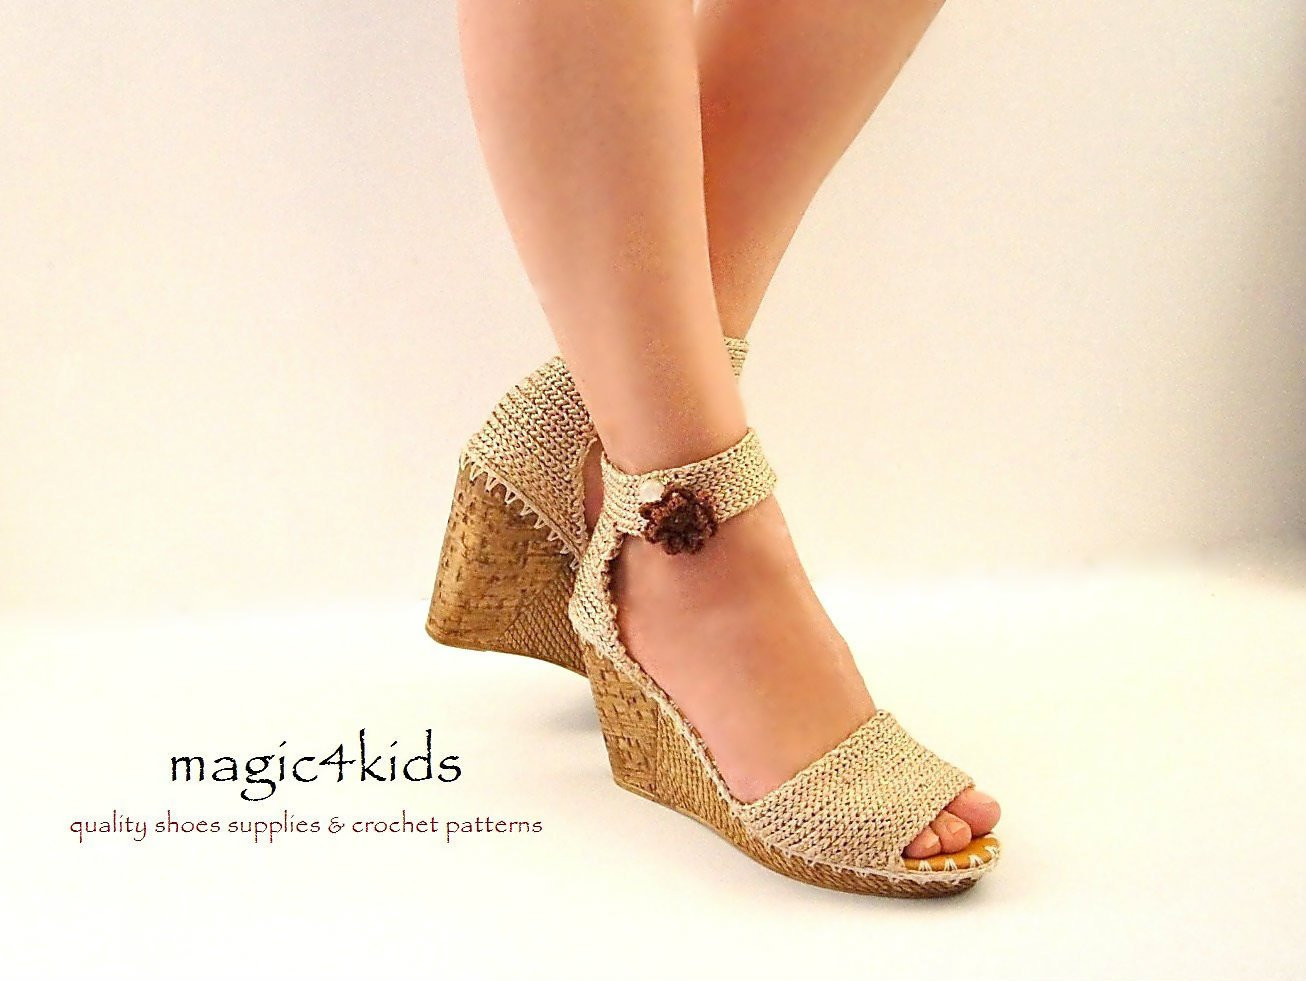 Awesome Beautiful Wedges Sandals Women Crochet Sandals Made to Crochet Wedges Of Marvelous 44 Ideas Crochet Wedges